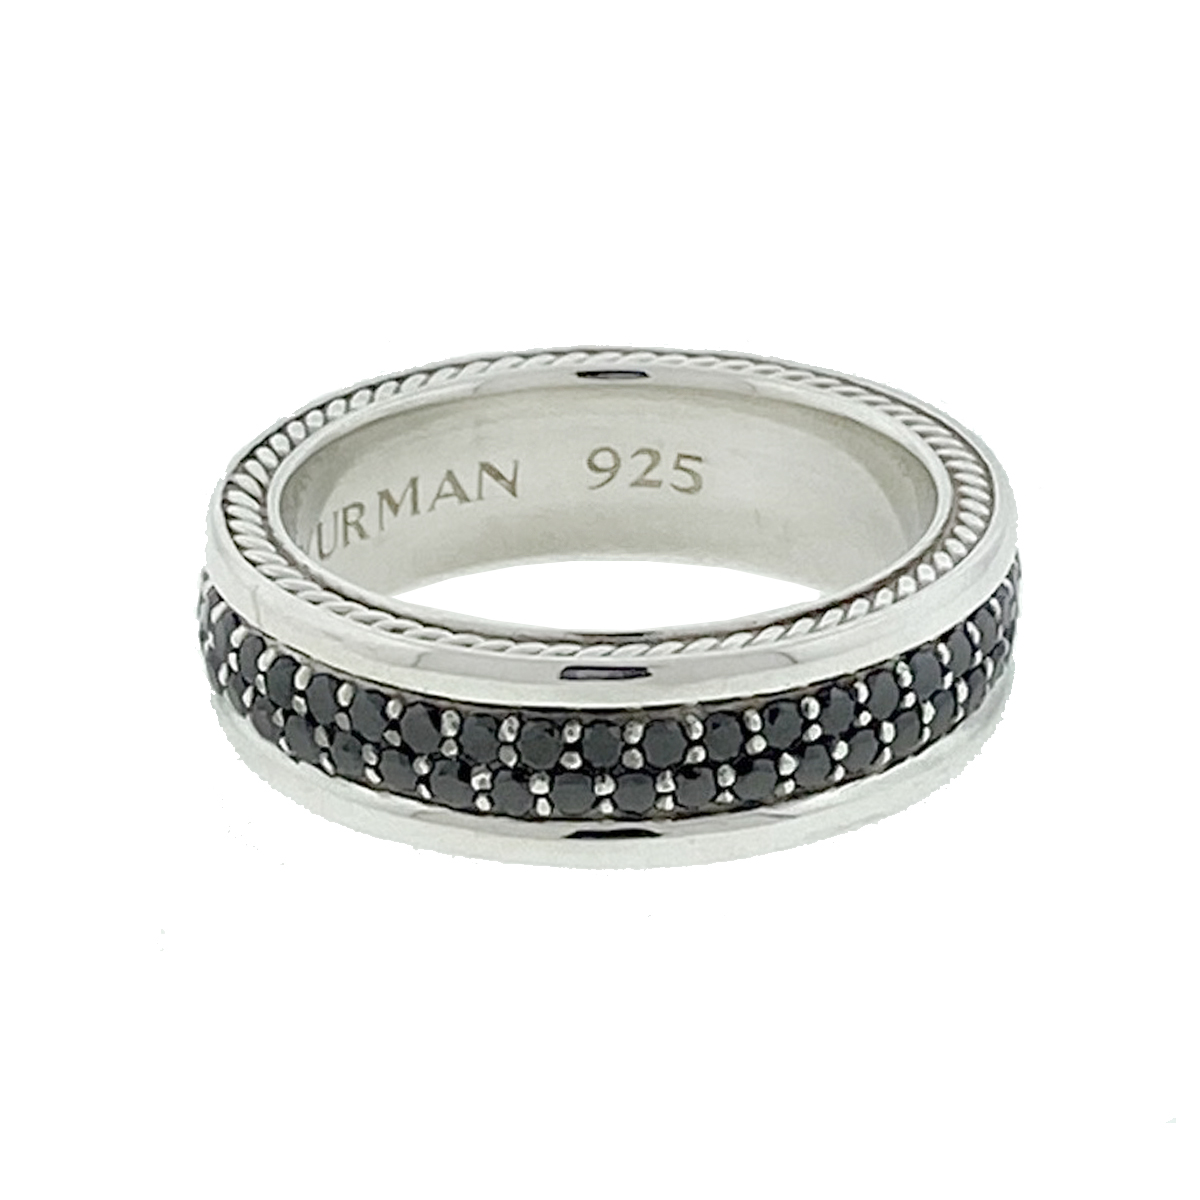 David Yurman Streamline Pave Band In Sterling Silver With Black Diamonds Ring